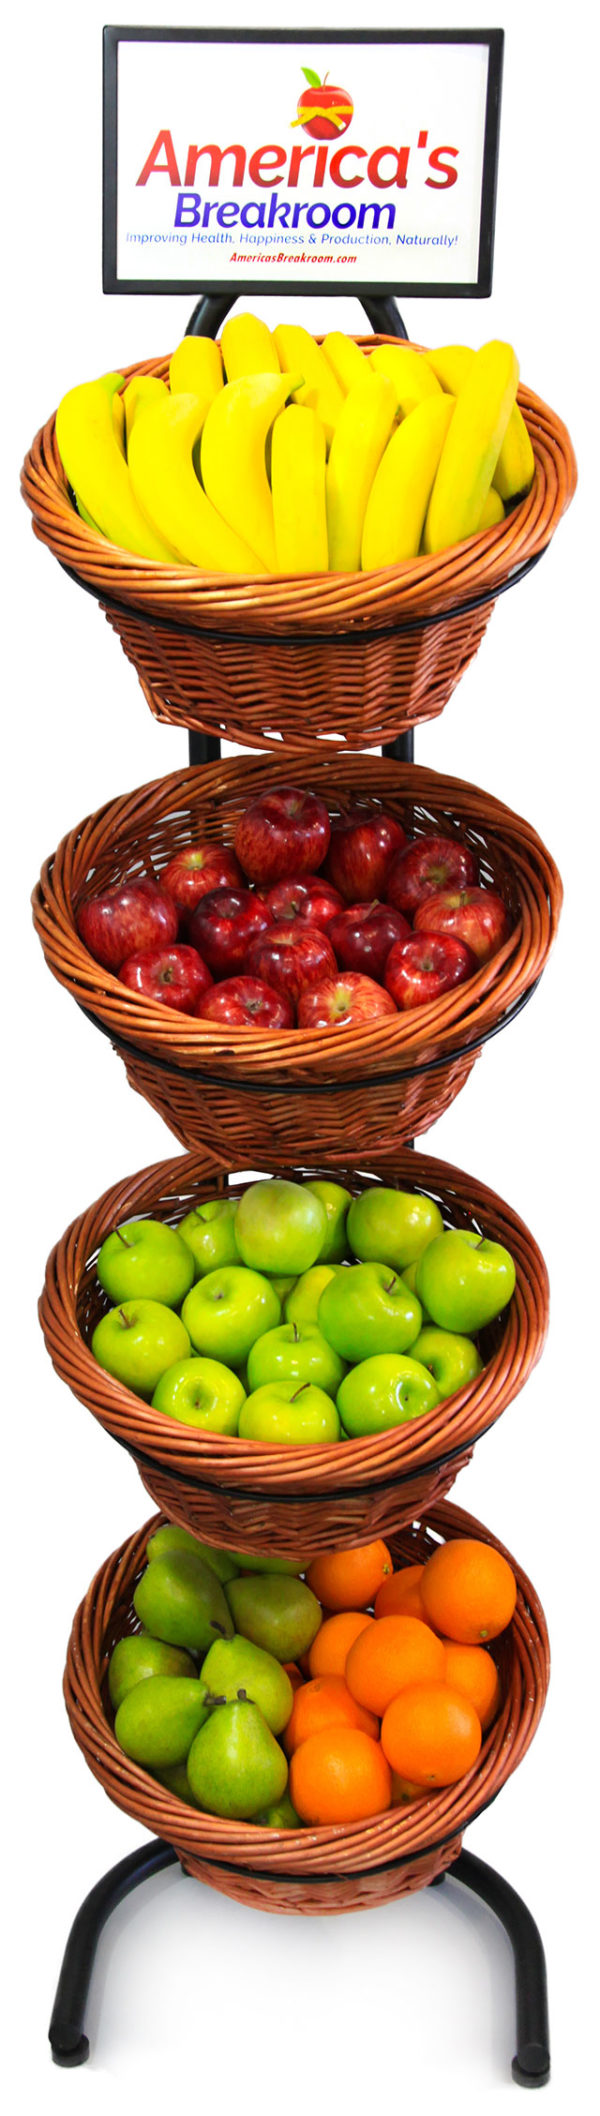 Office Fruit Delivery Large Premium Basket